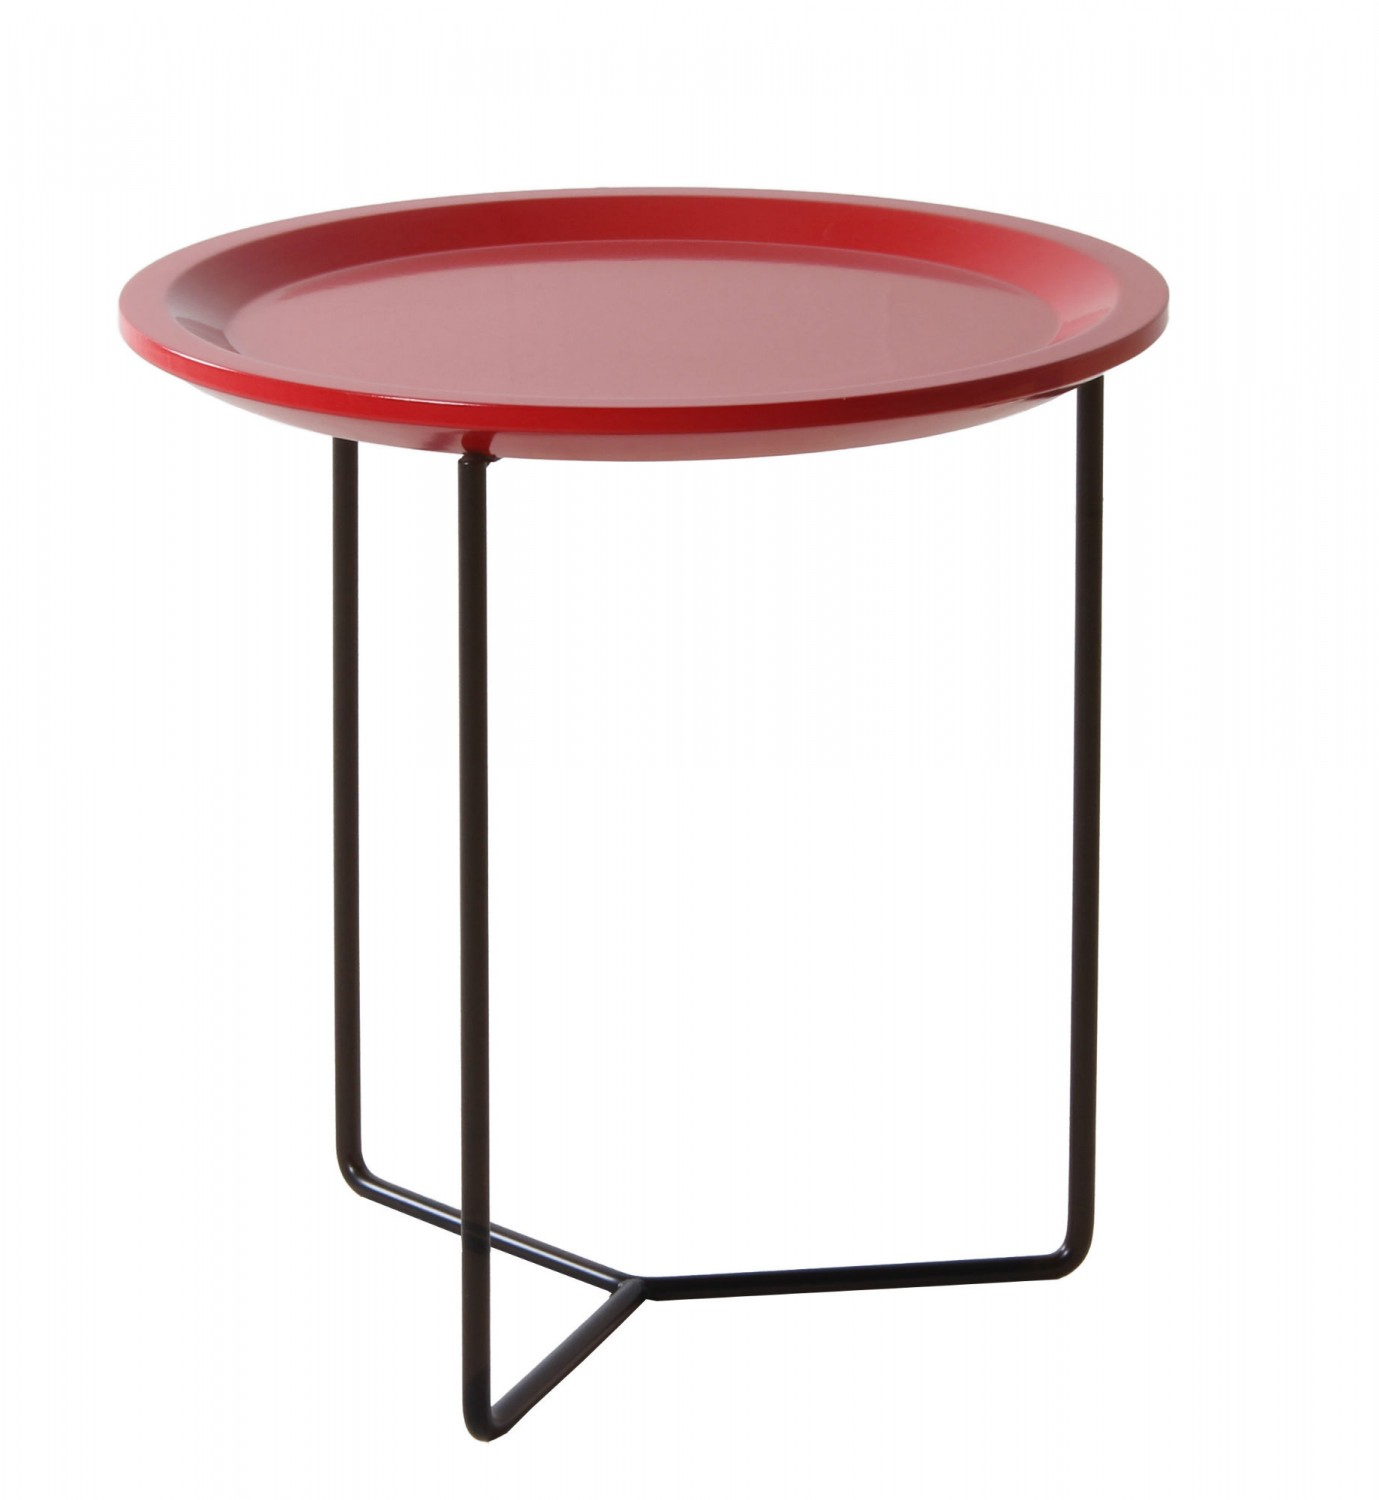 Table Basse Ronde Design Table Basse D Appoint Design